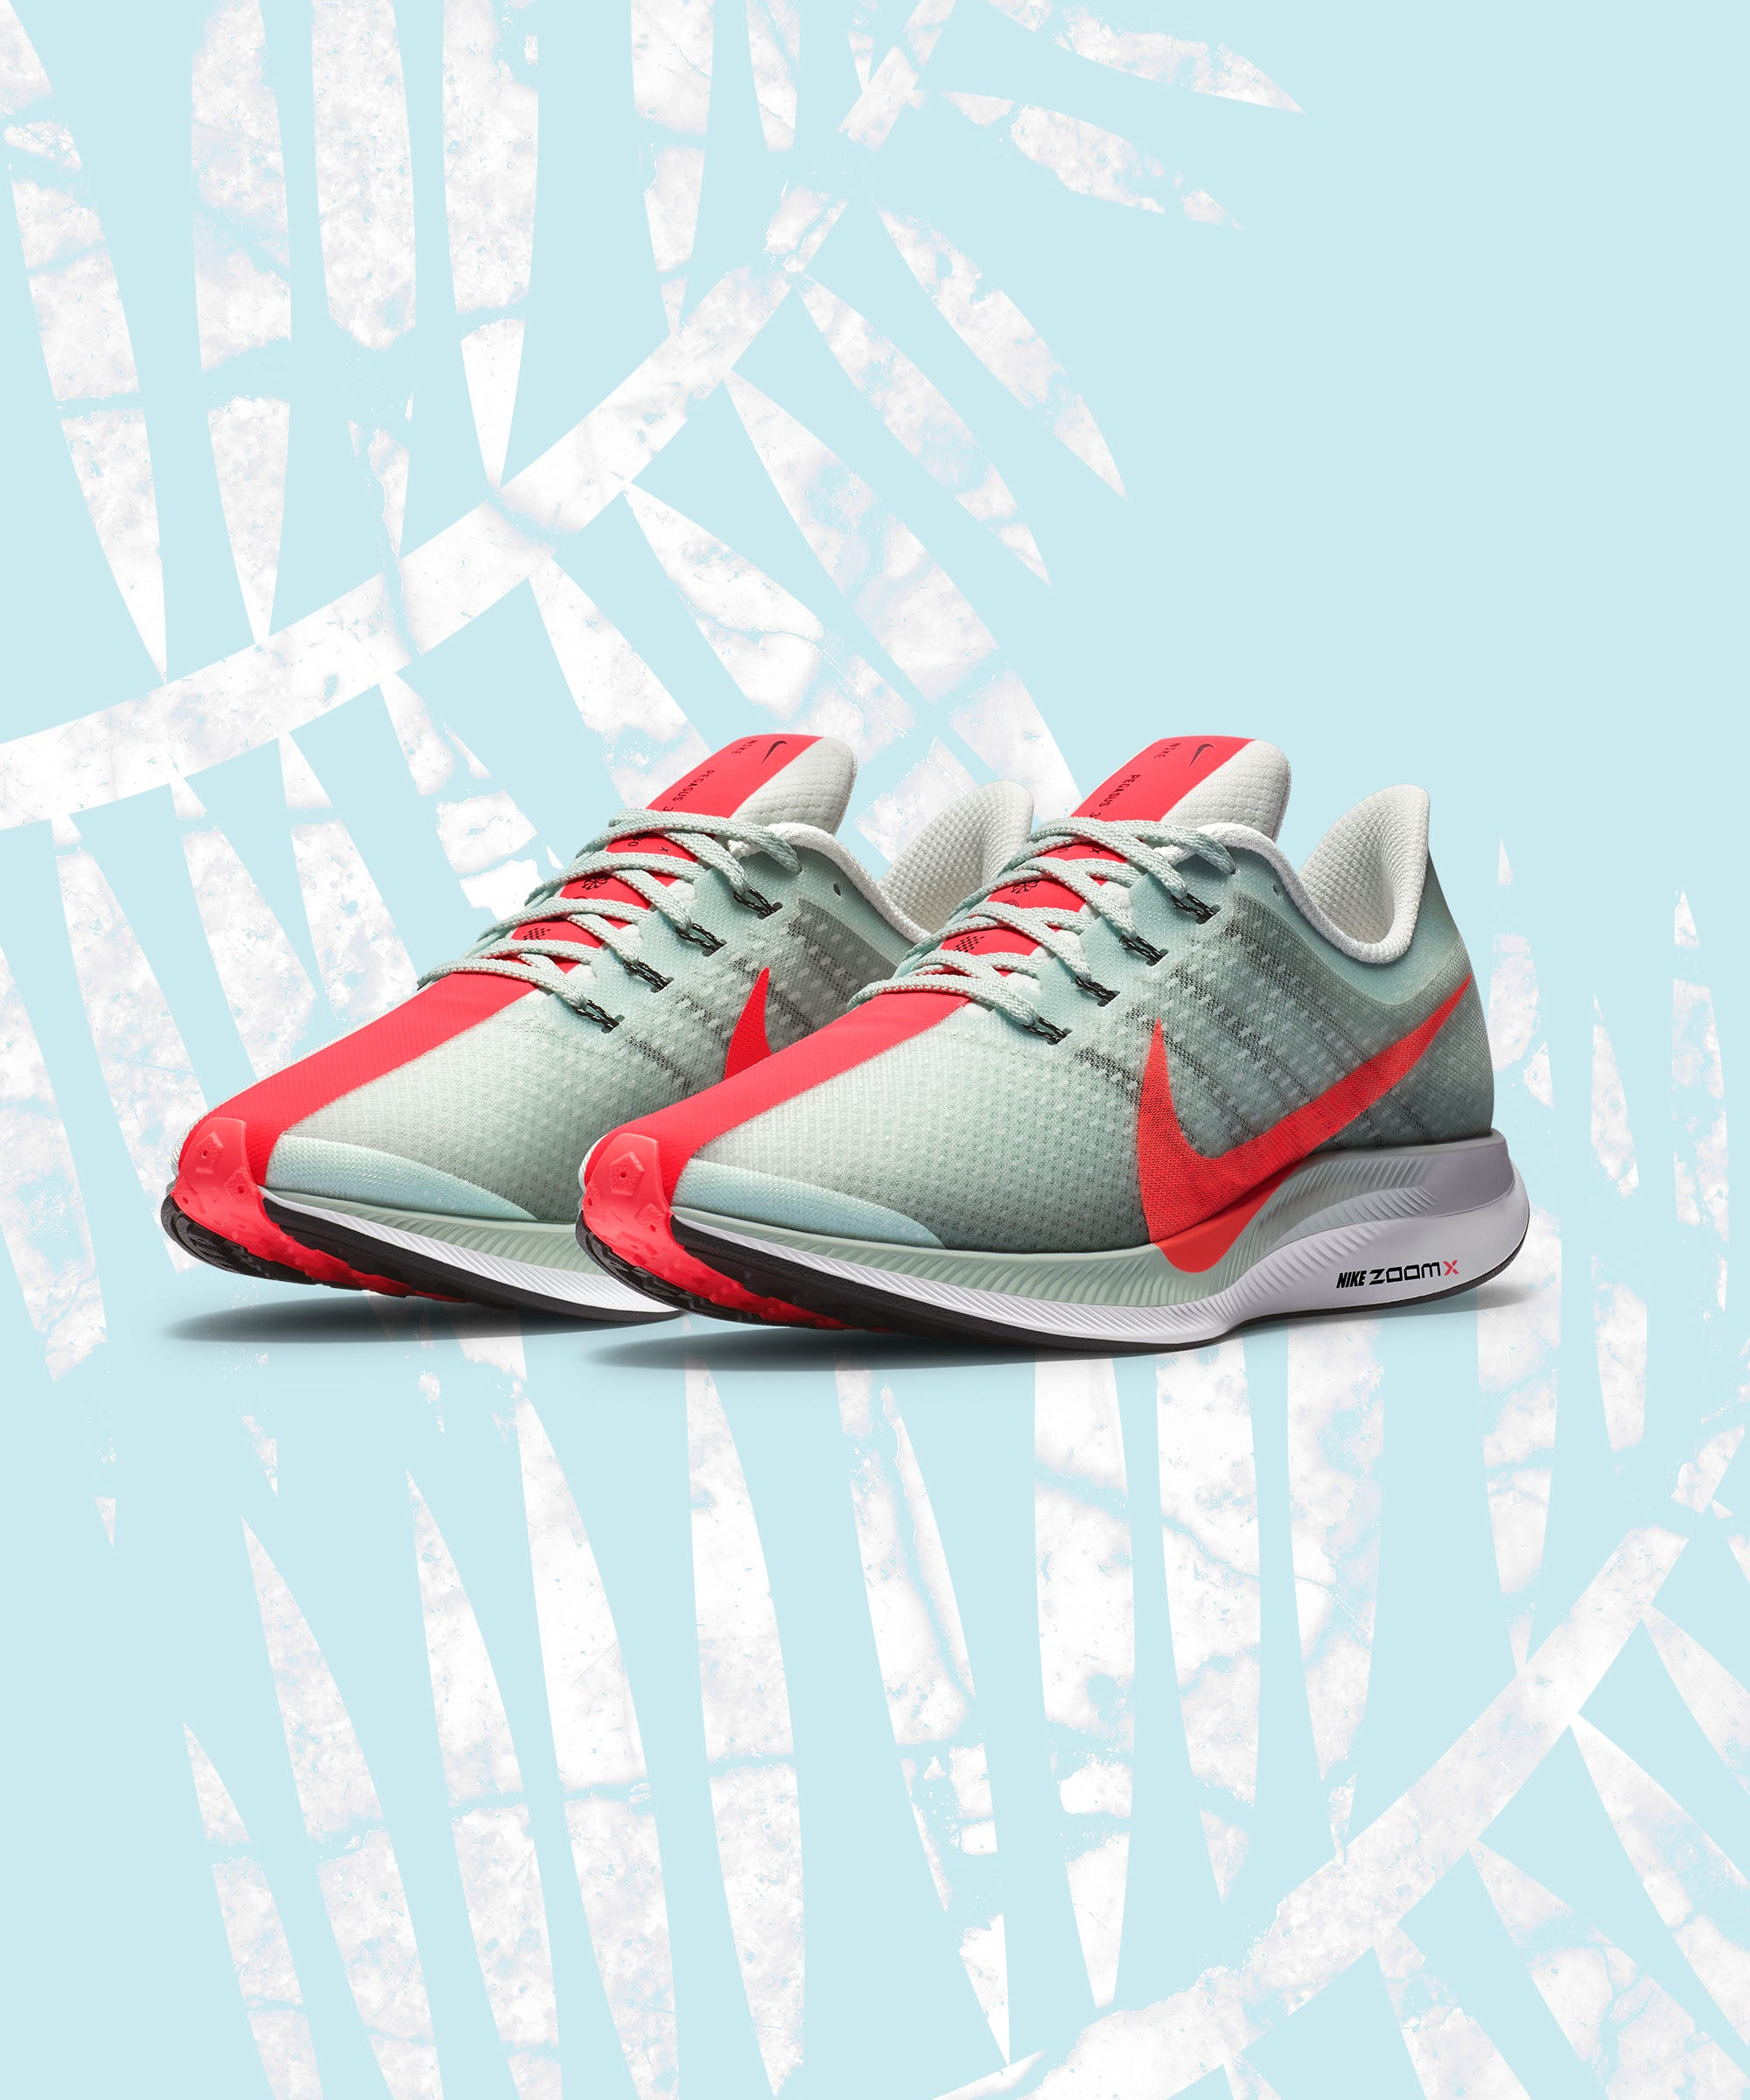 Think Nike Shoes Are Bad For Running  Their Latest Launch Might Change Your  Mind 7f8894866